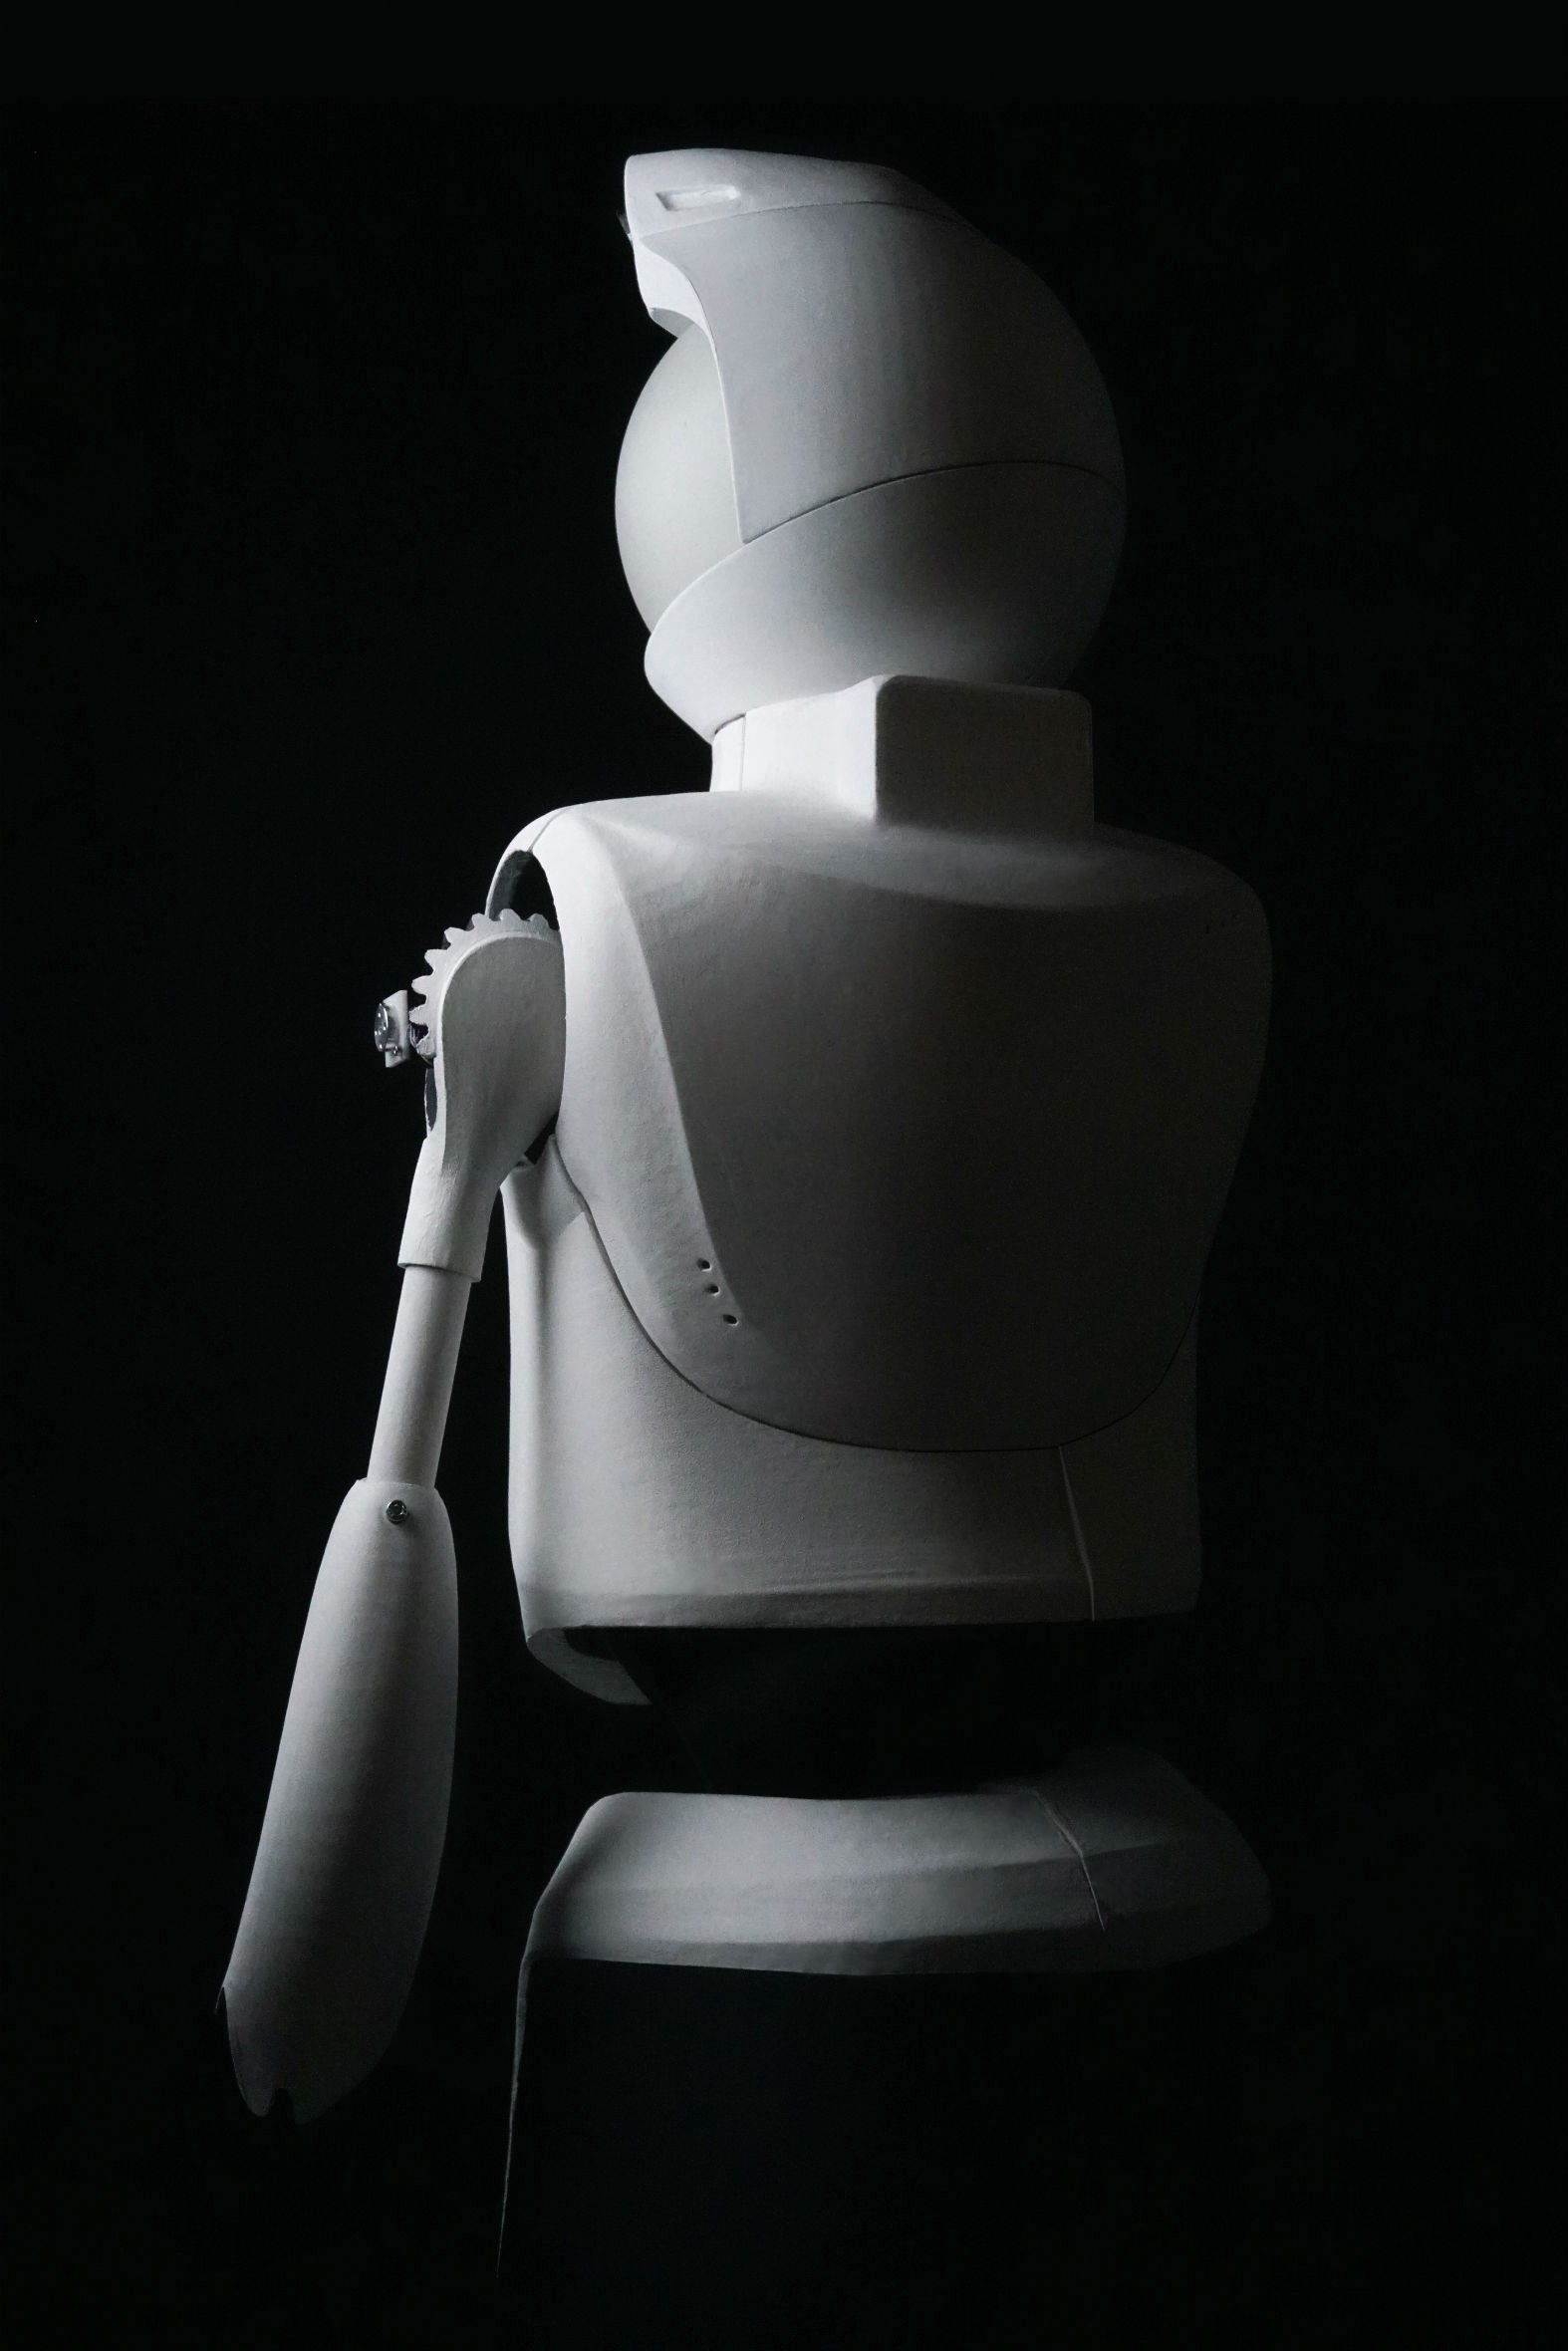 Dramatic black and white photo of Quori robot taken from behind. Shadow falls on robot's back and looks ominous.